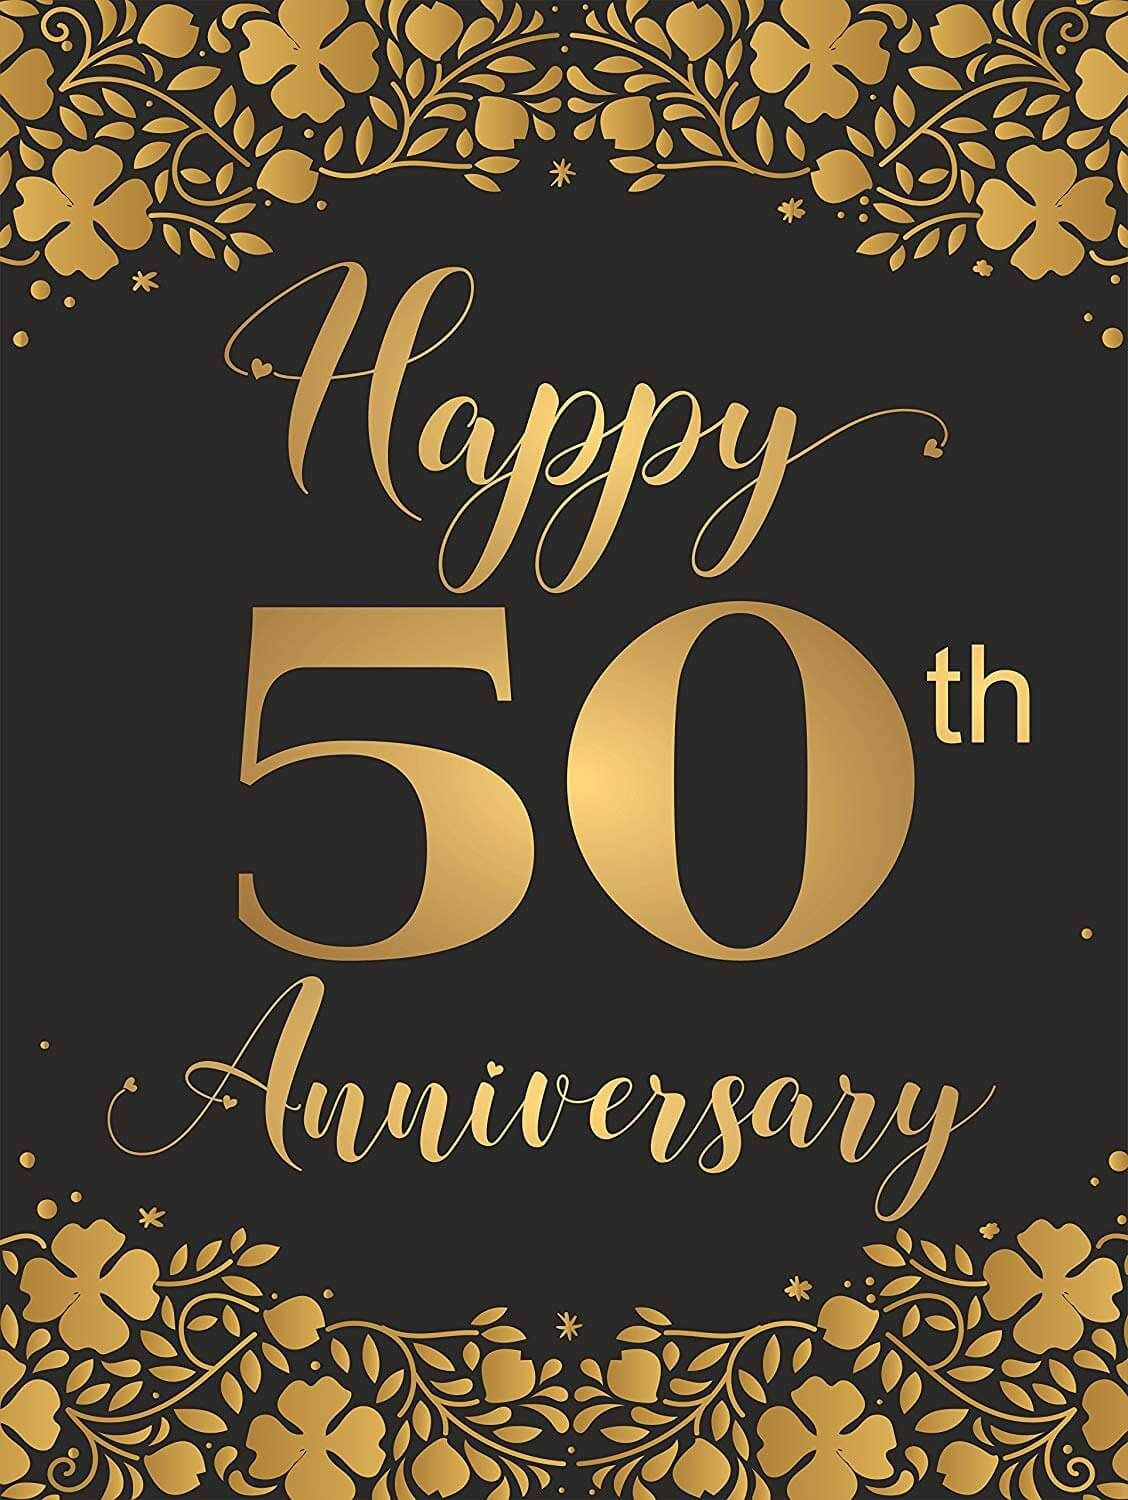 Happy 50th Anniversary Images For Husband, Wife and